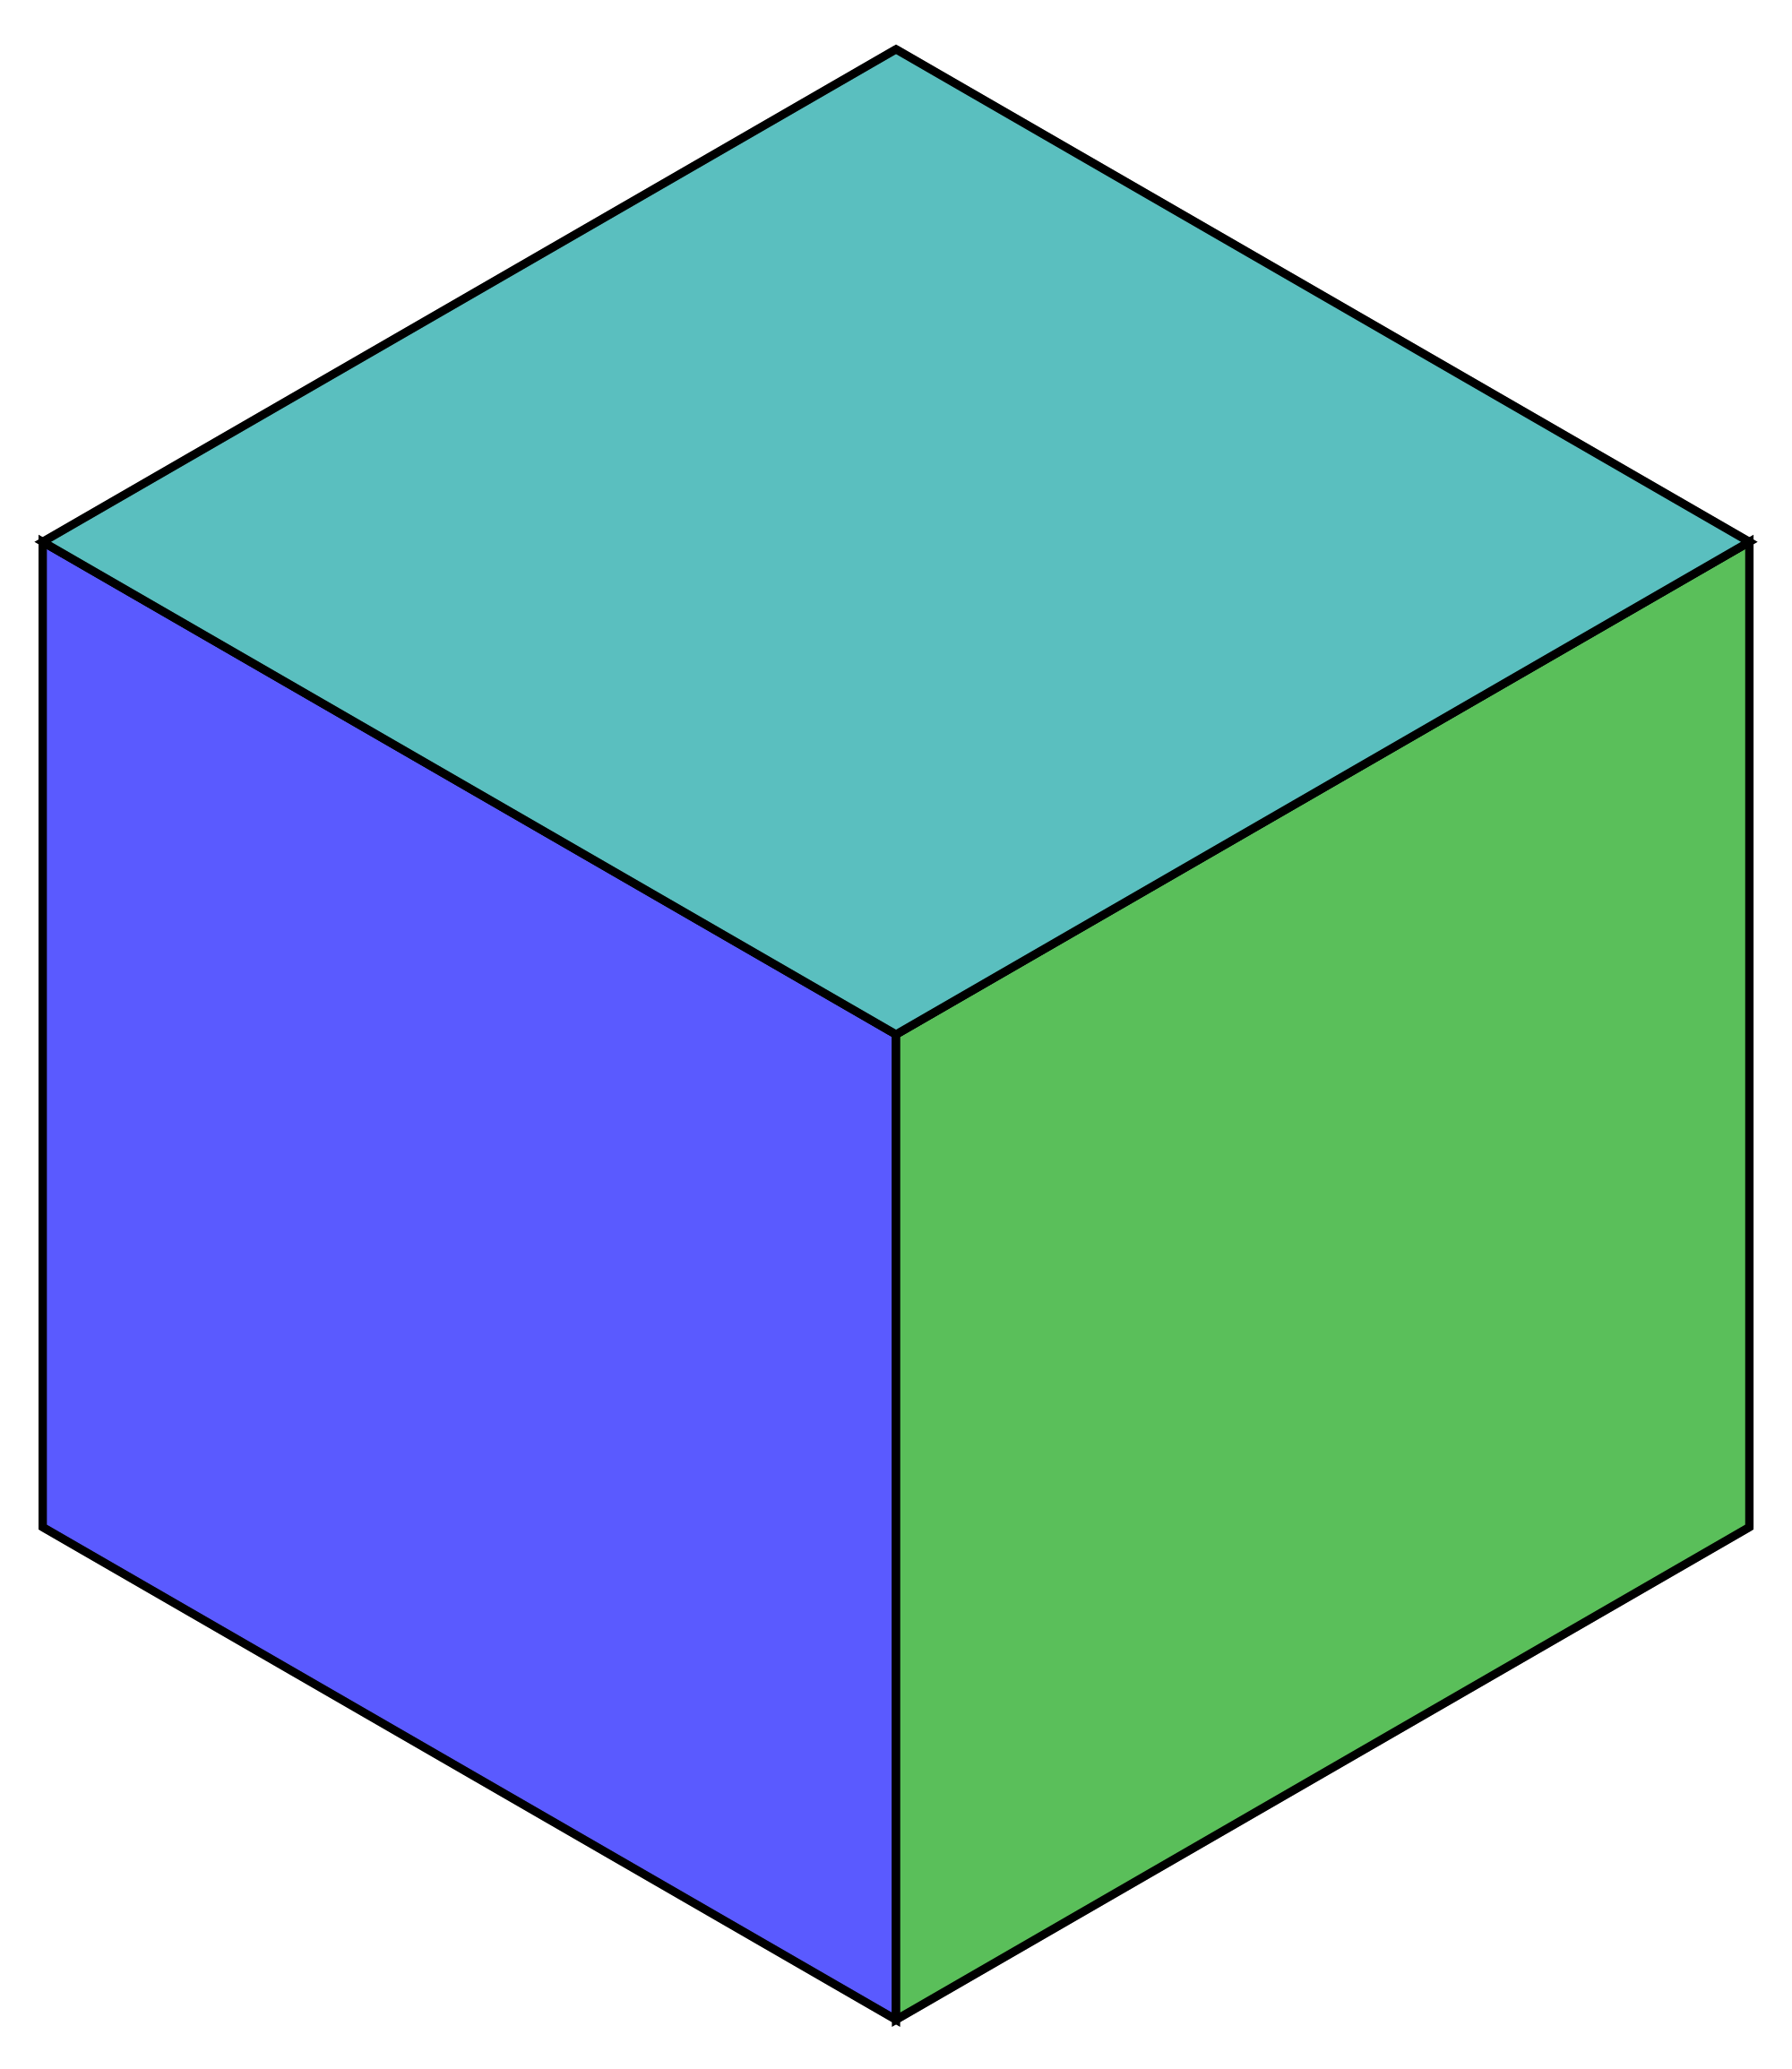 Green hexagon png. File rhombic dissected color